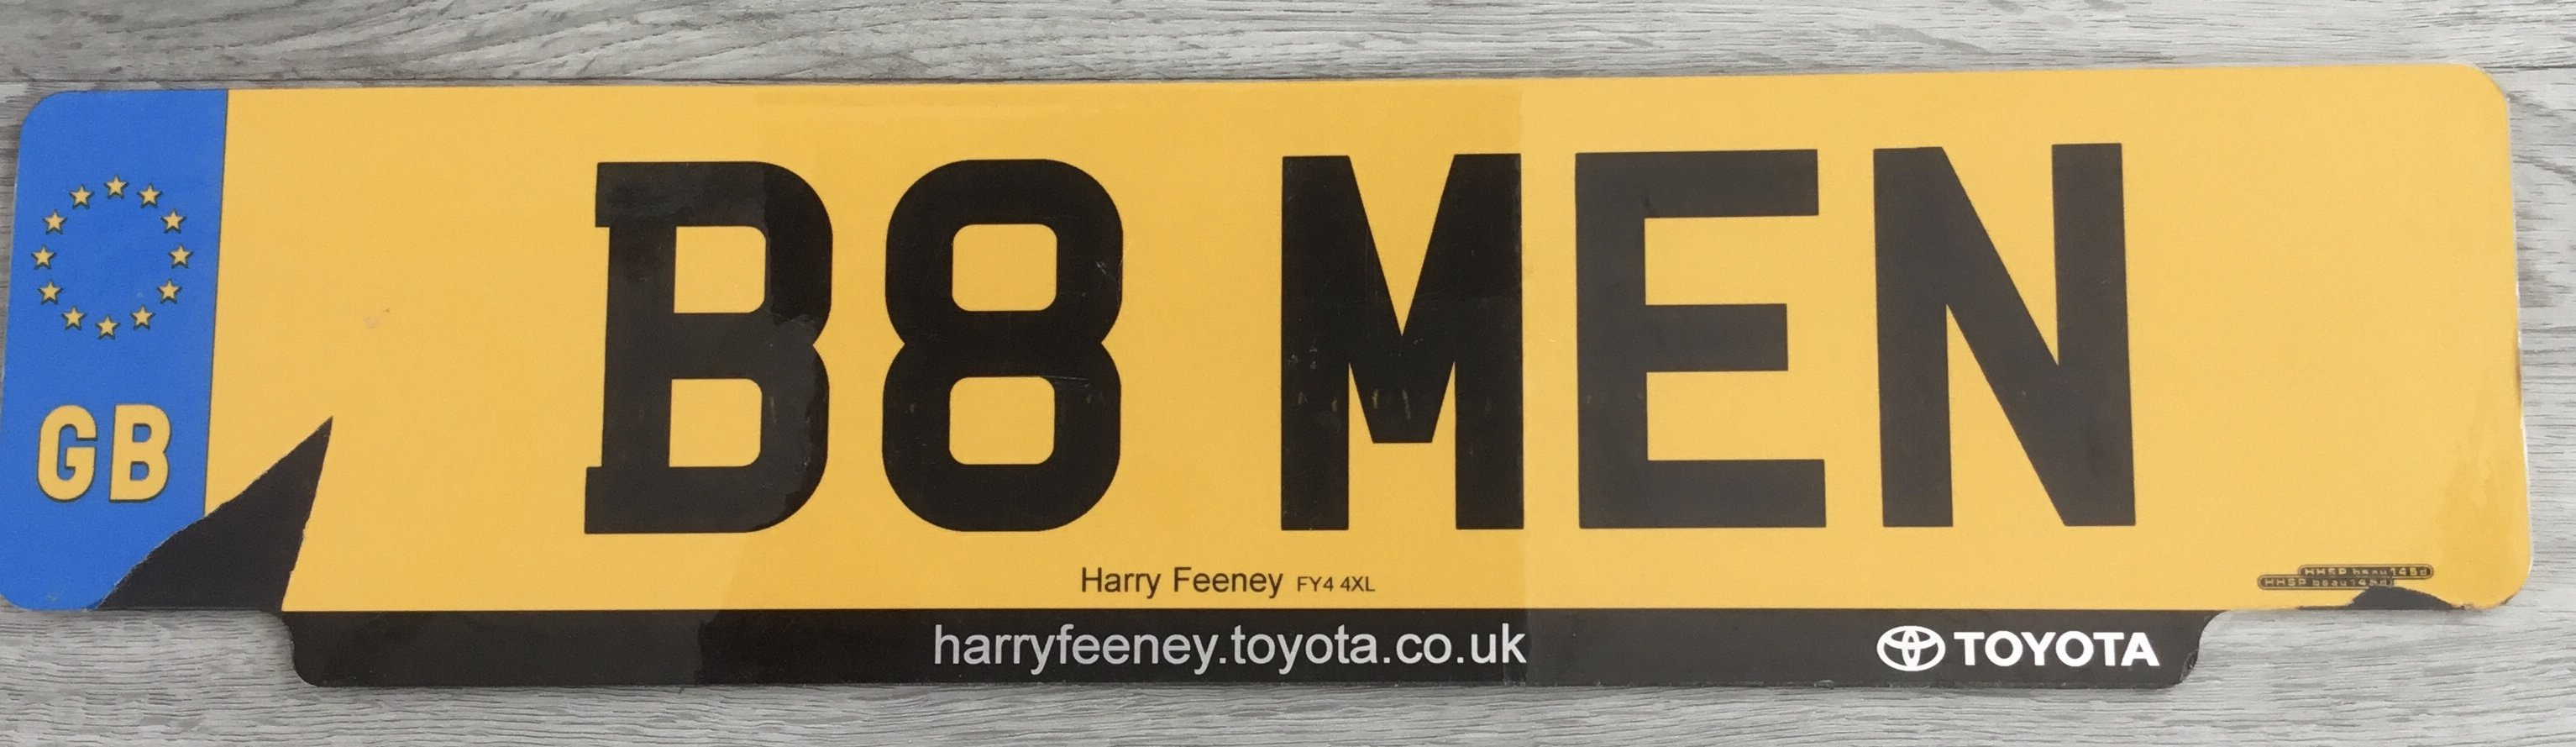 B8MEN Private Registration No  For Sale (picture 1 of 1)